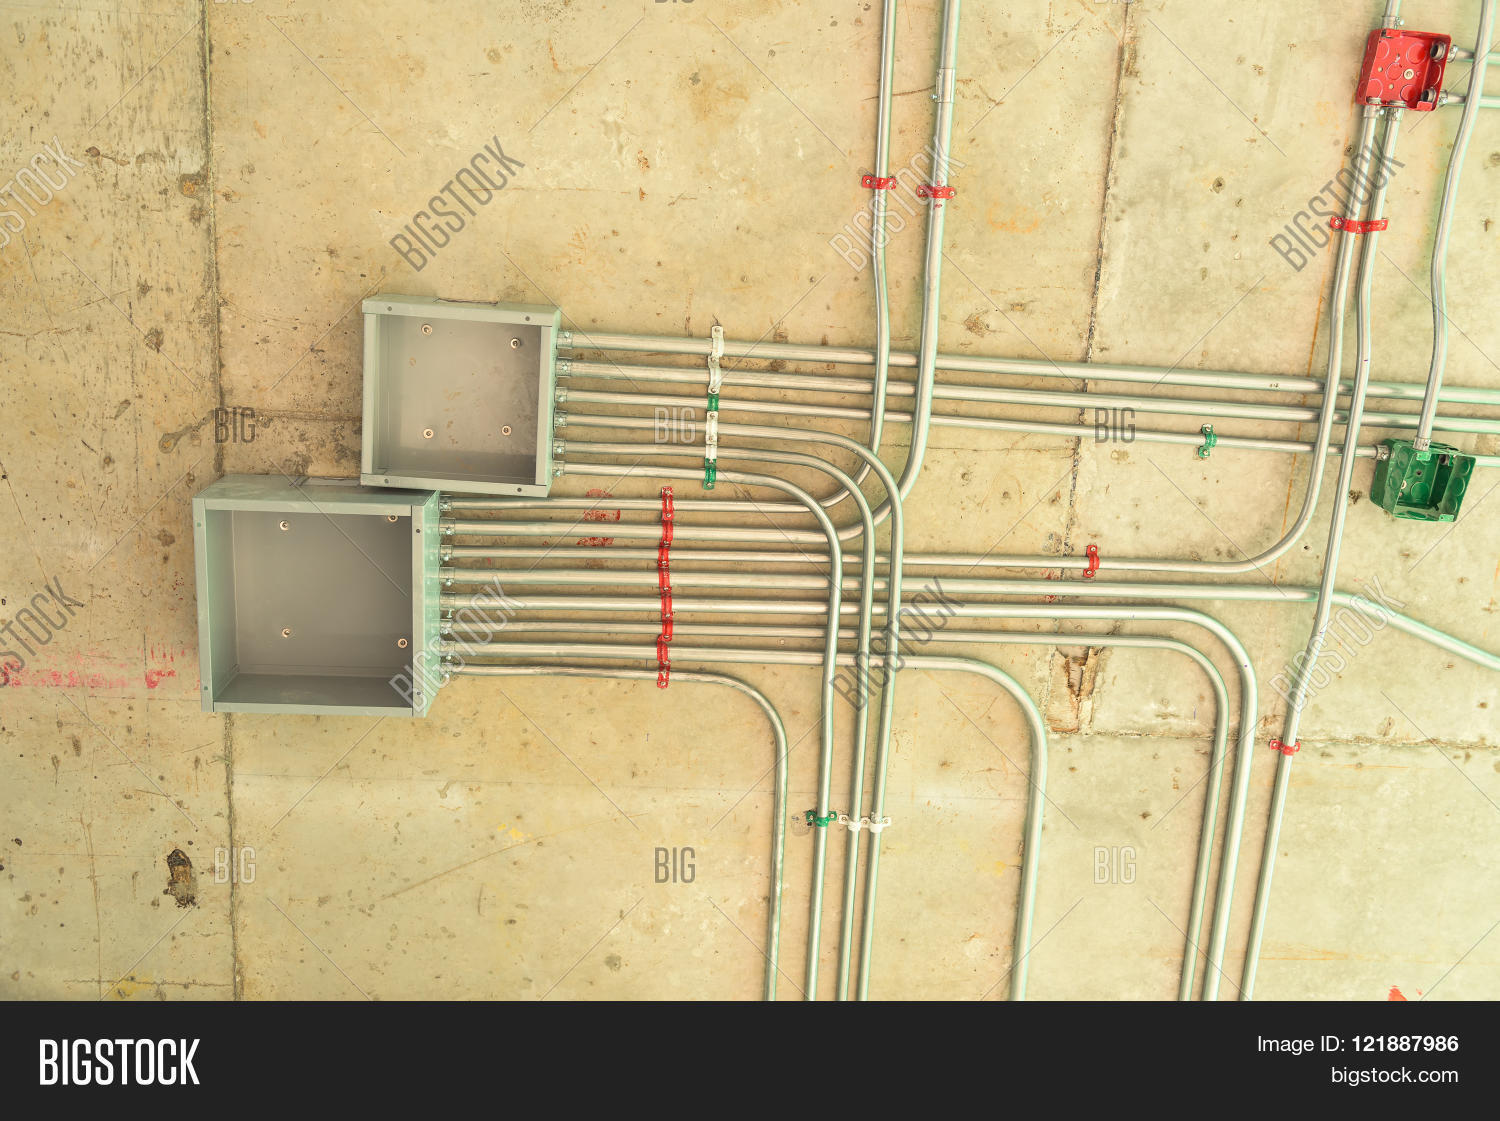 Electrical Network Image Photo Free Trial Bigstock Wire Conduit Installation On Ceiling Floor Cable